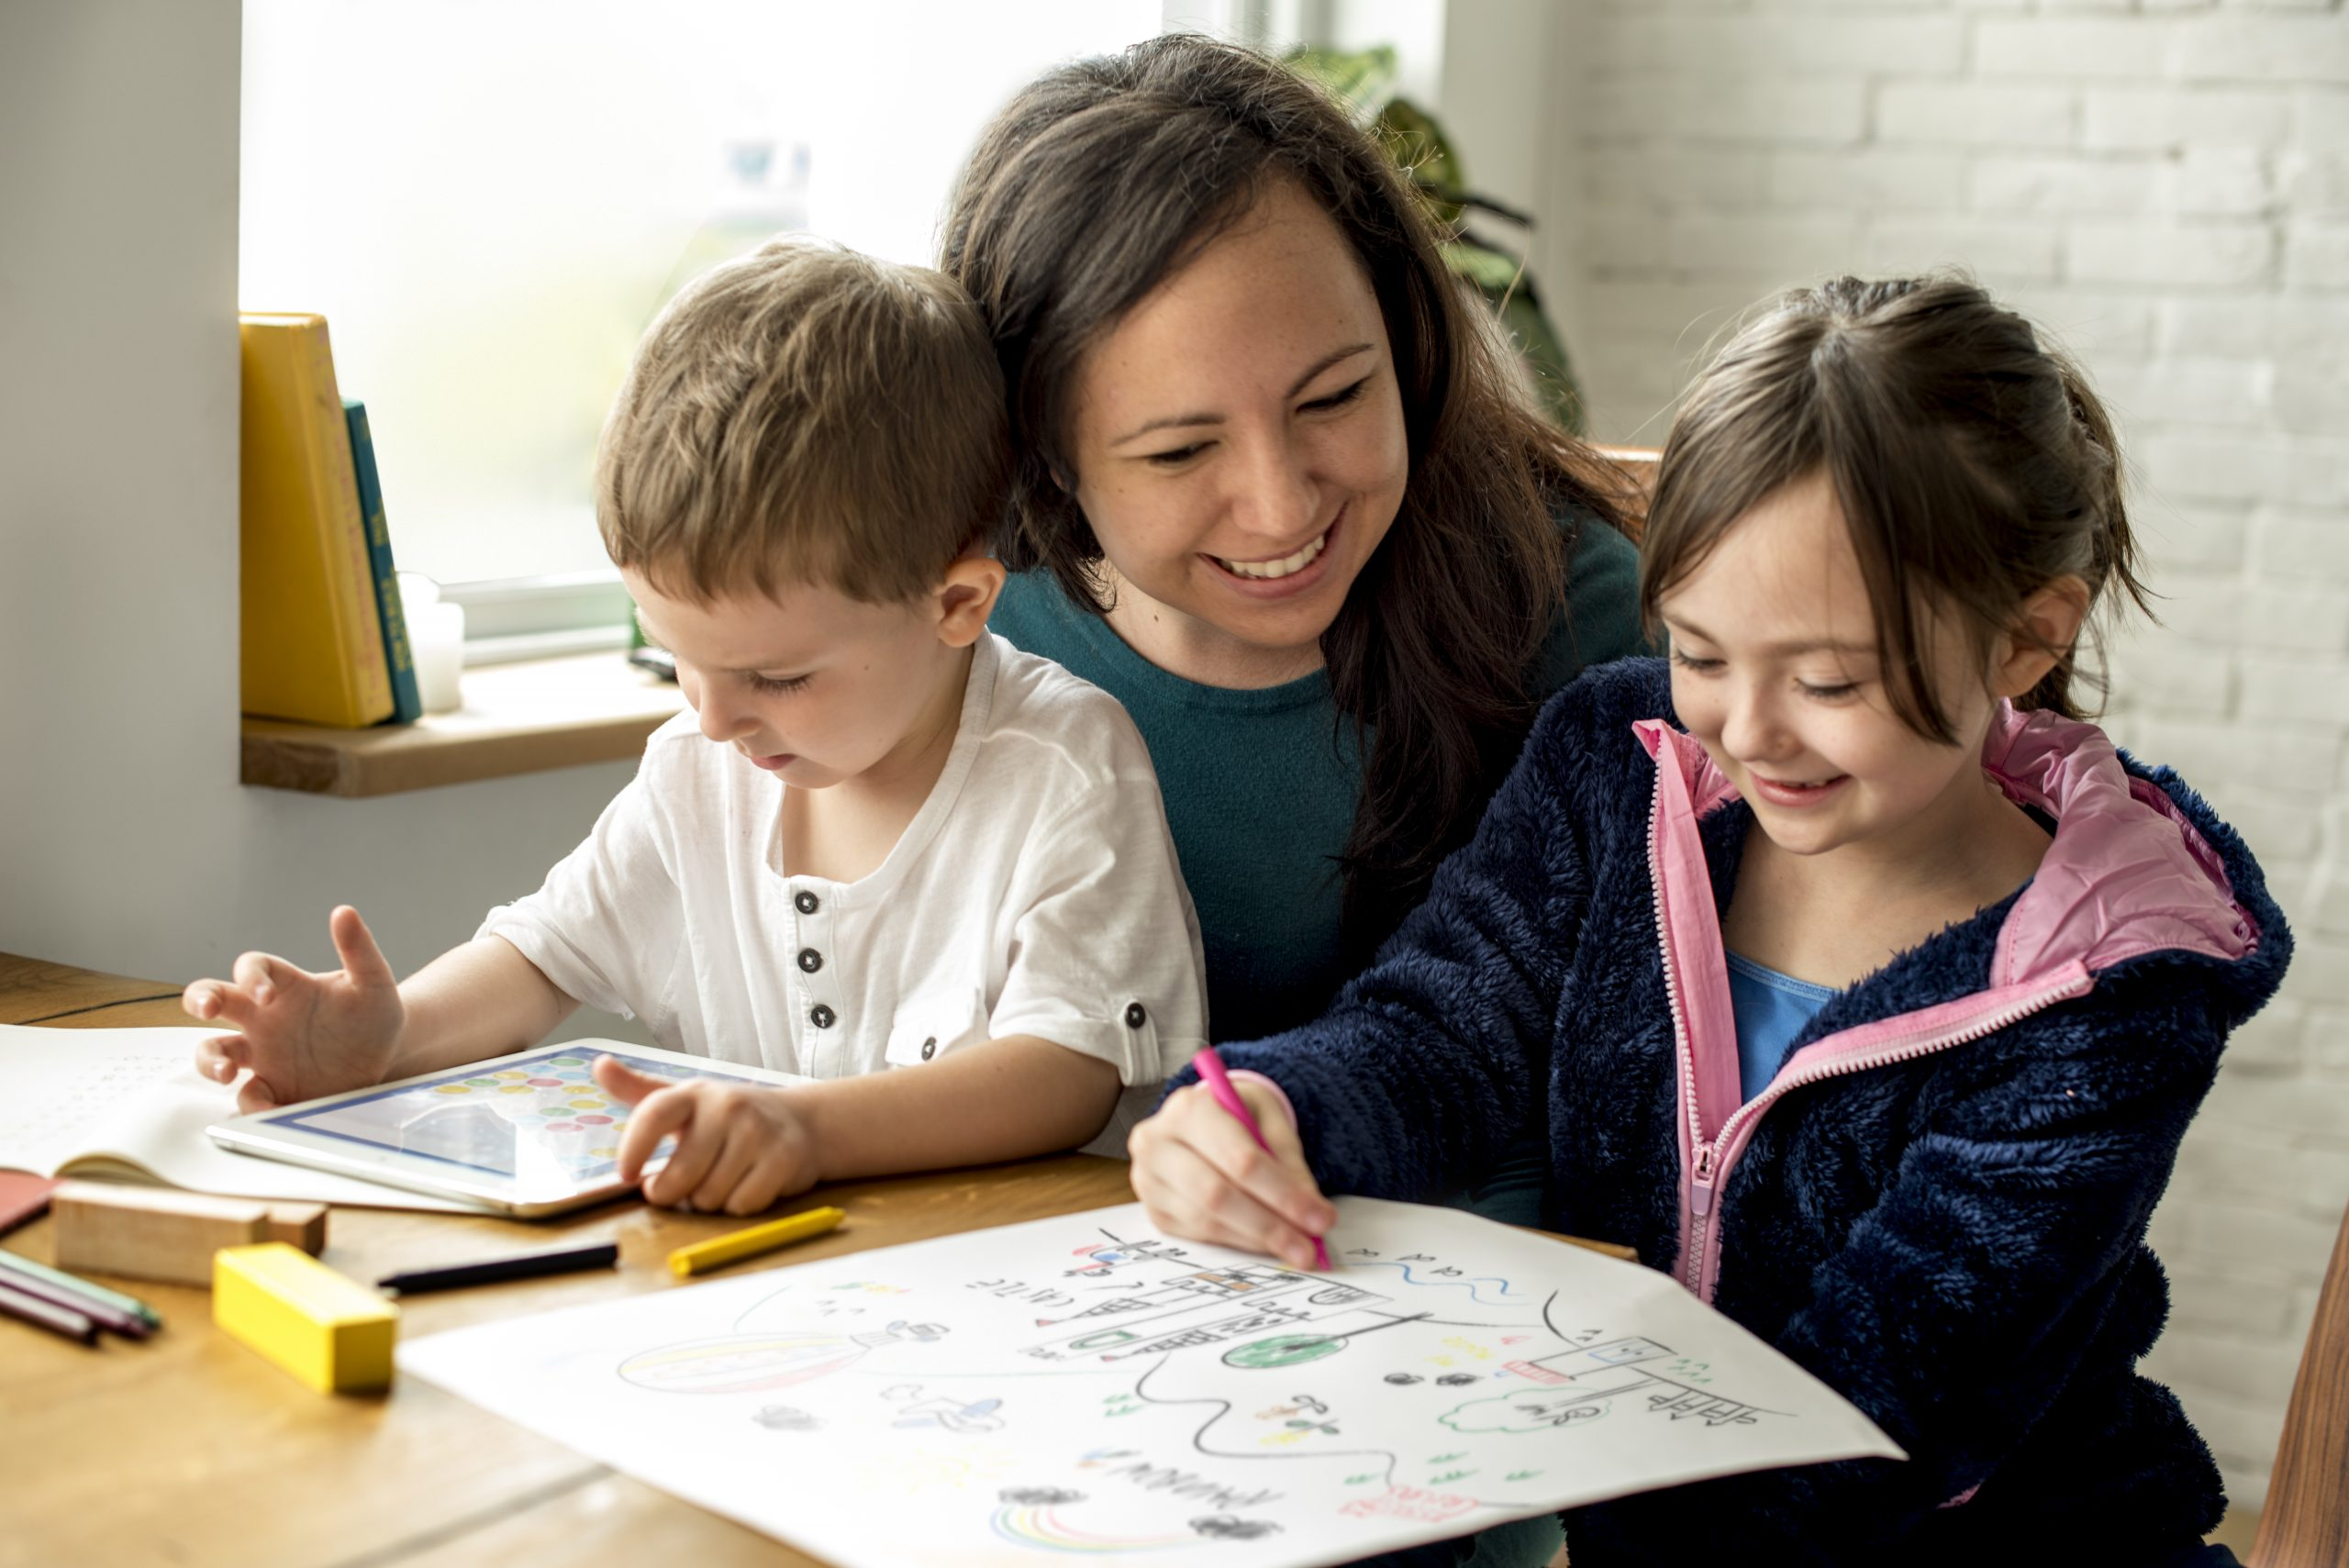 Mum sits at table homeschooling two young children